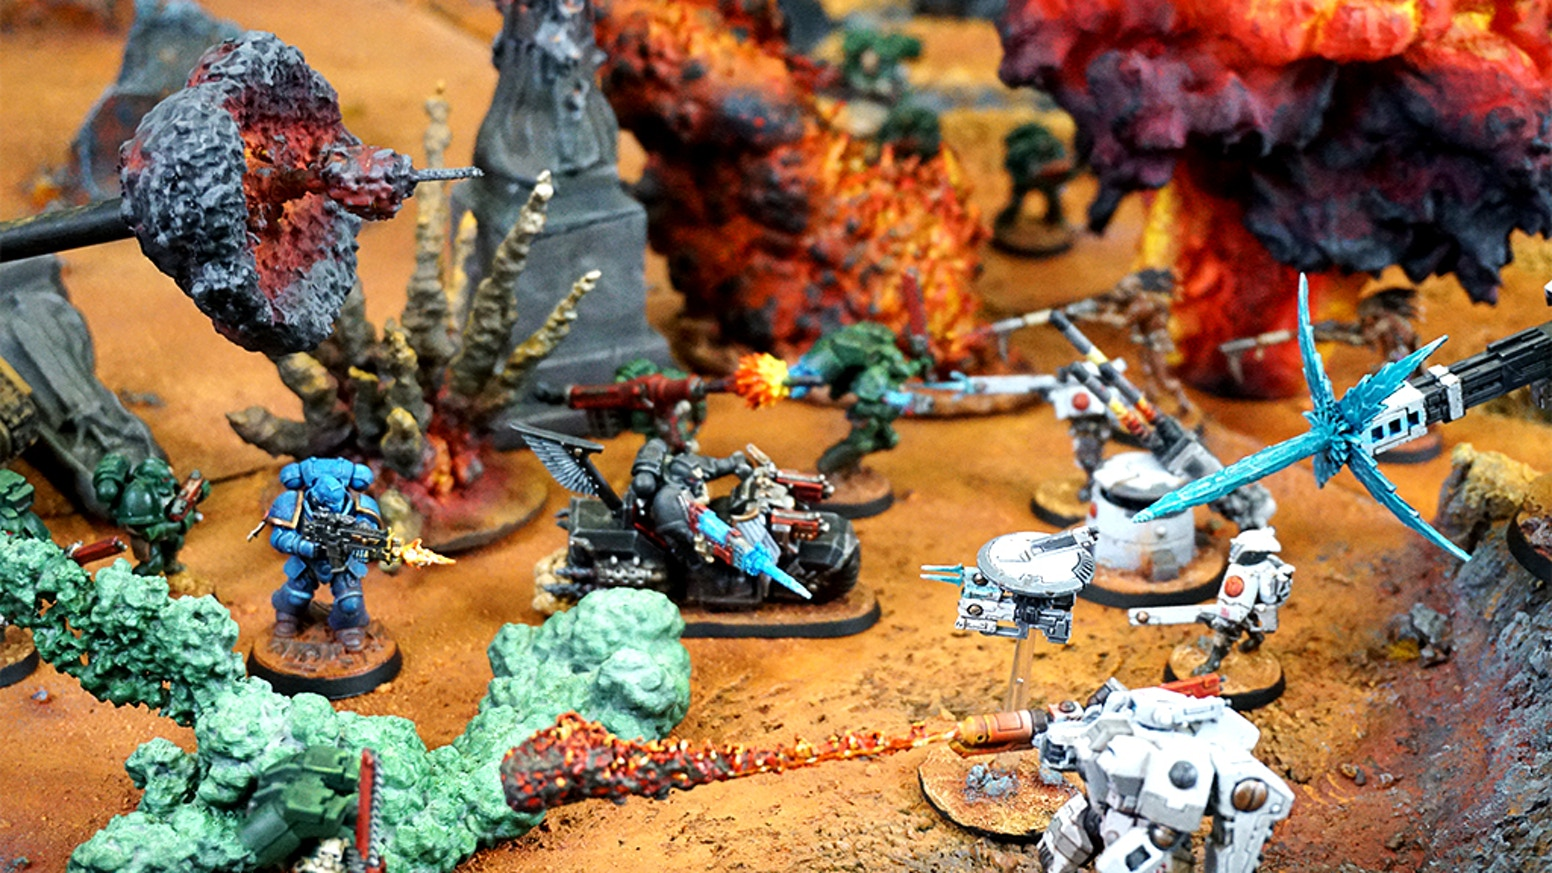 3D Printable FX and destructible scenary for your wargames and tabletop games